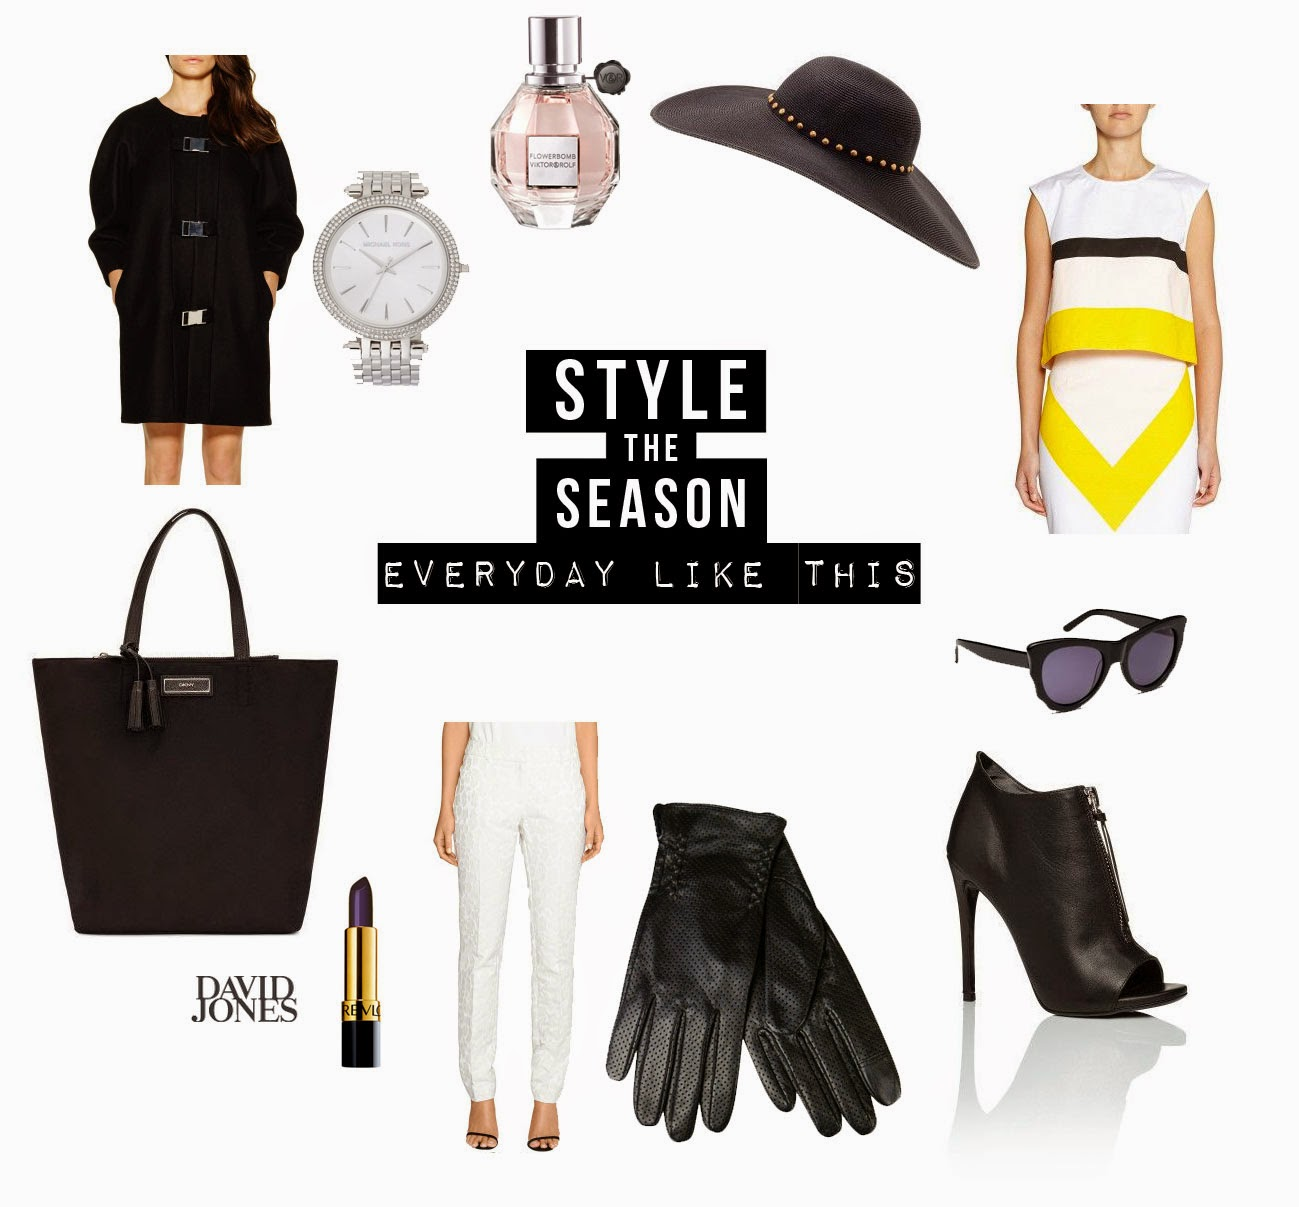 couturing fashion winter david jones tony bianco revlon ksubi camilla and marc michael kors